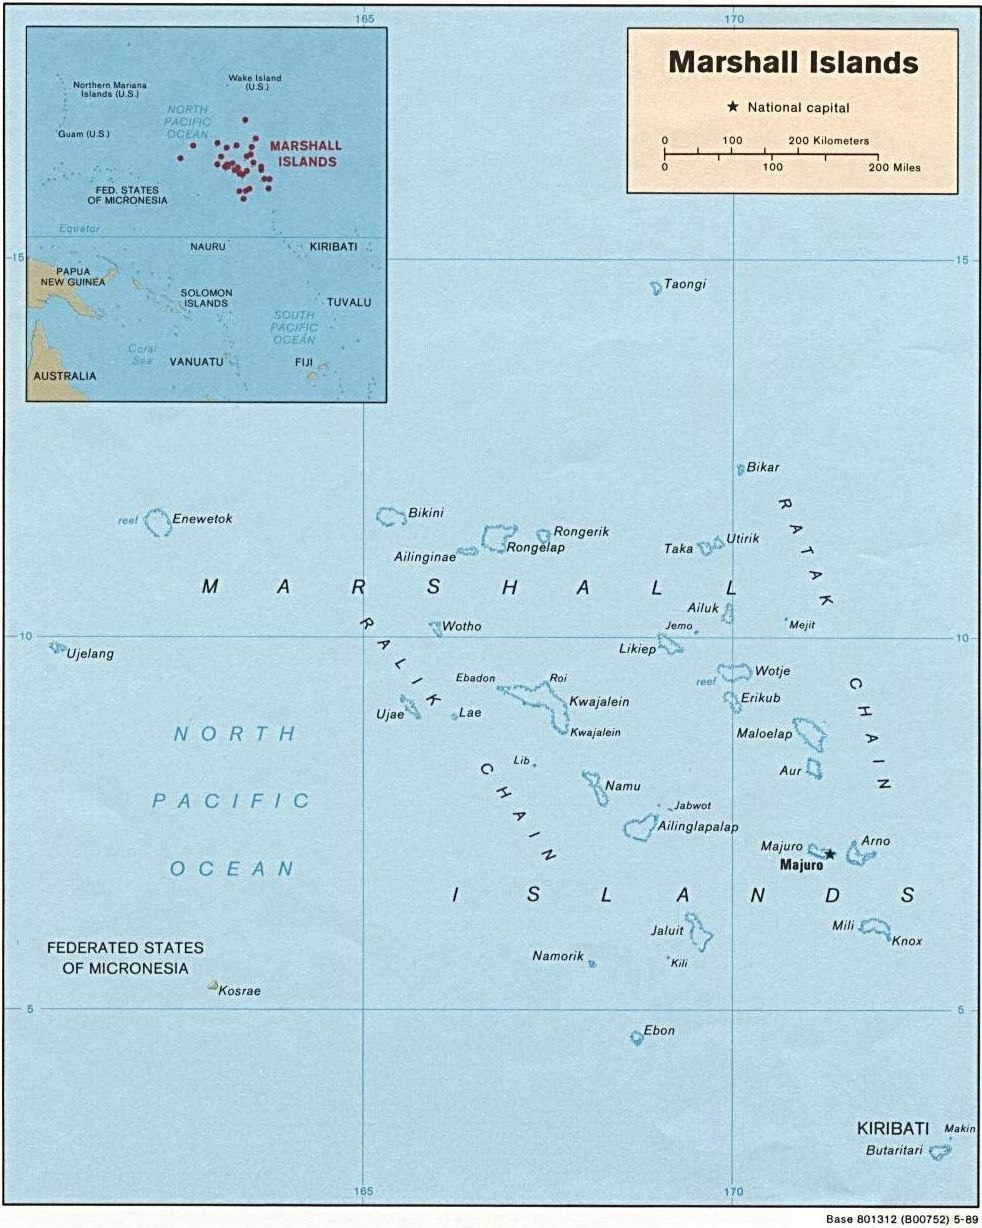 Map of the Republic of the Marshall Islands (Politi